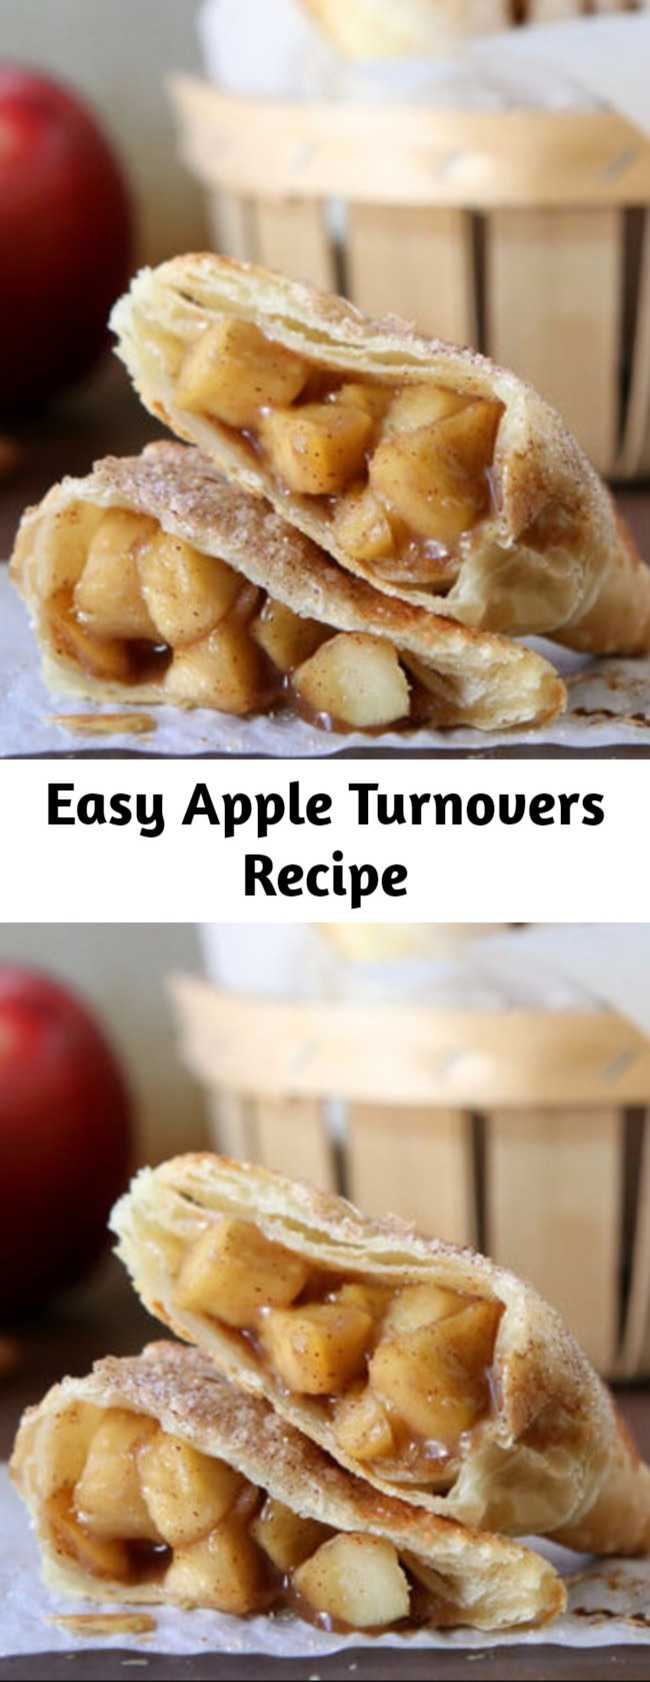 Easy Apple Turnovers Recipe - Forgo bakery-made sweets and try making your own apple turnovers at home. It's easier than you think!